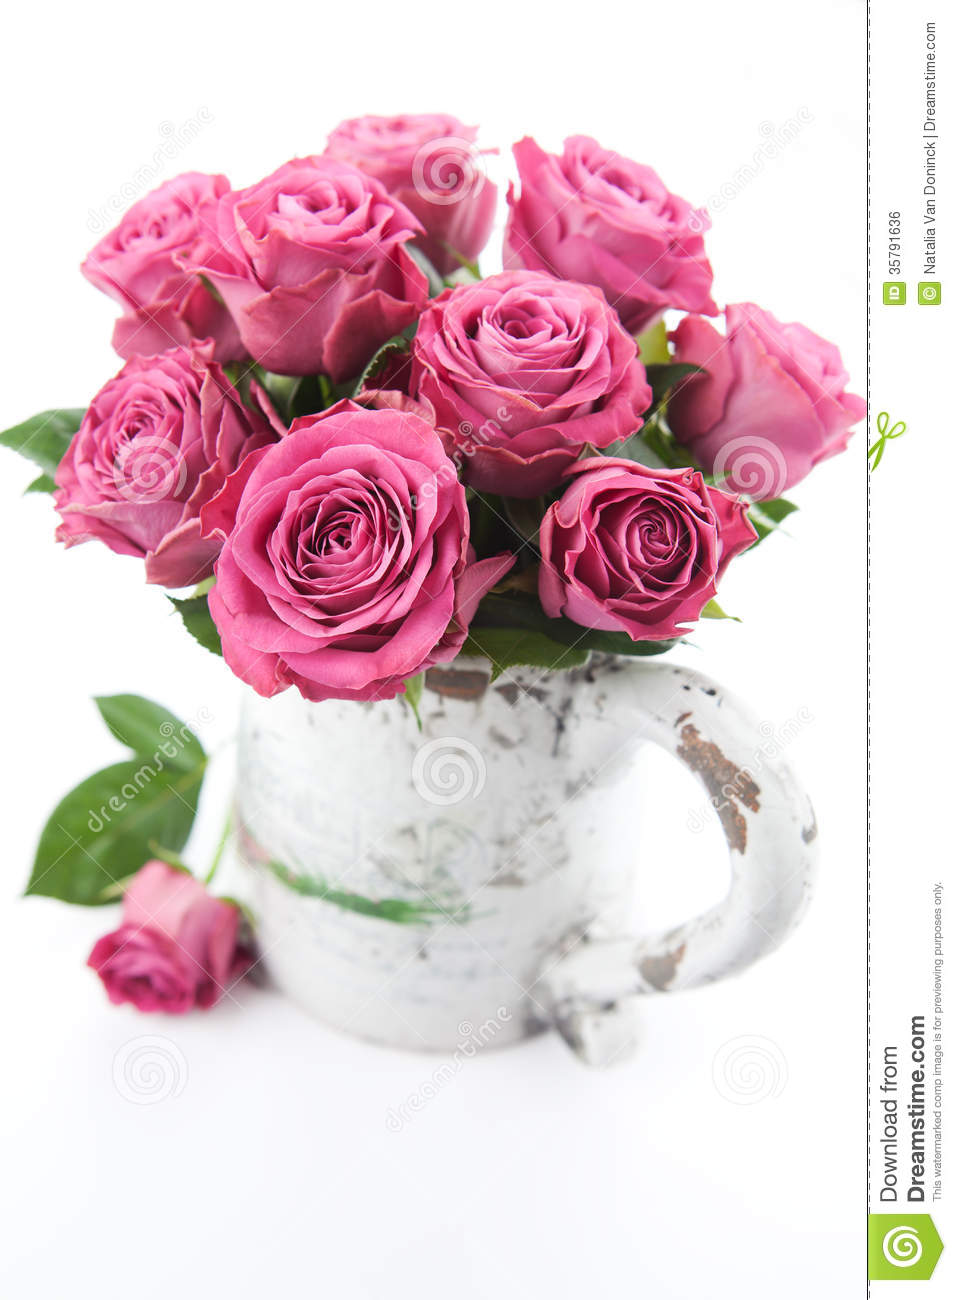 Beautiful Roses Royalty Free Stock Image - Image: 35791636